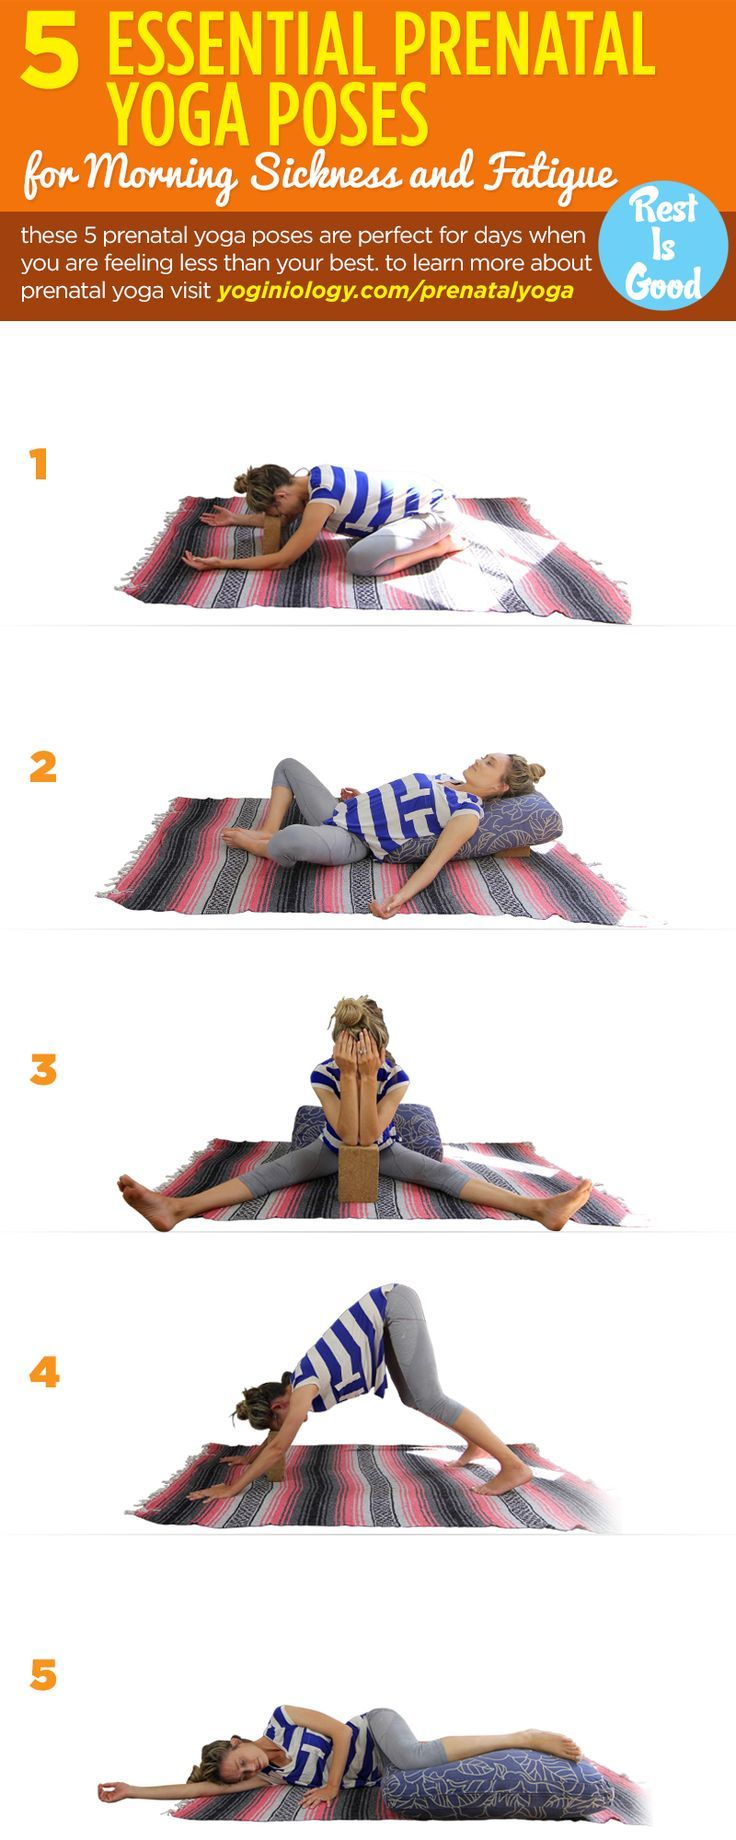 If pregnancy is leaving you feeling nauseous and exhausted, these five yoga poses can help at any trimester! Using a yoga block and bolster (or just sofa cushion) can help support you and apply pressure for instant relief!   To learn more about prenatal y